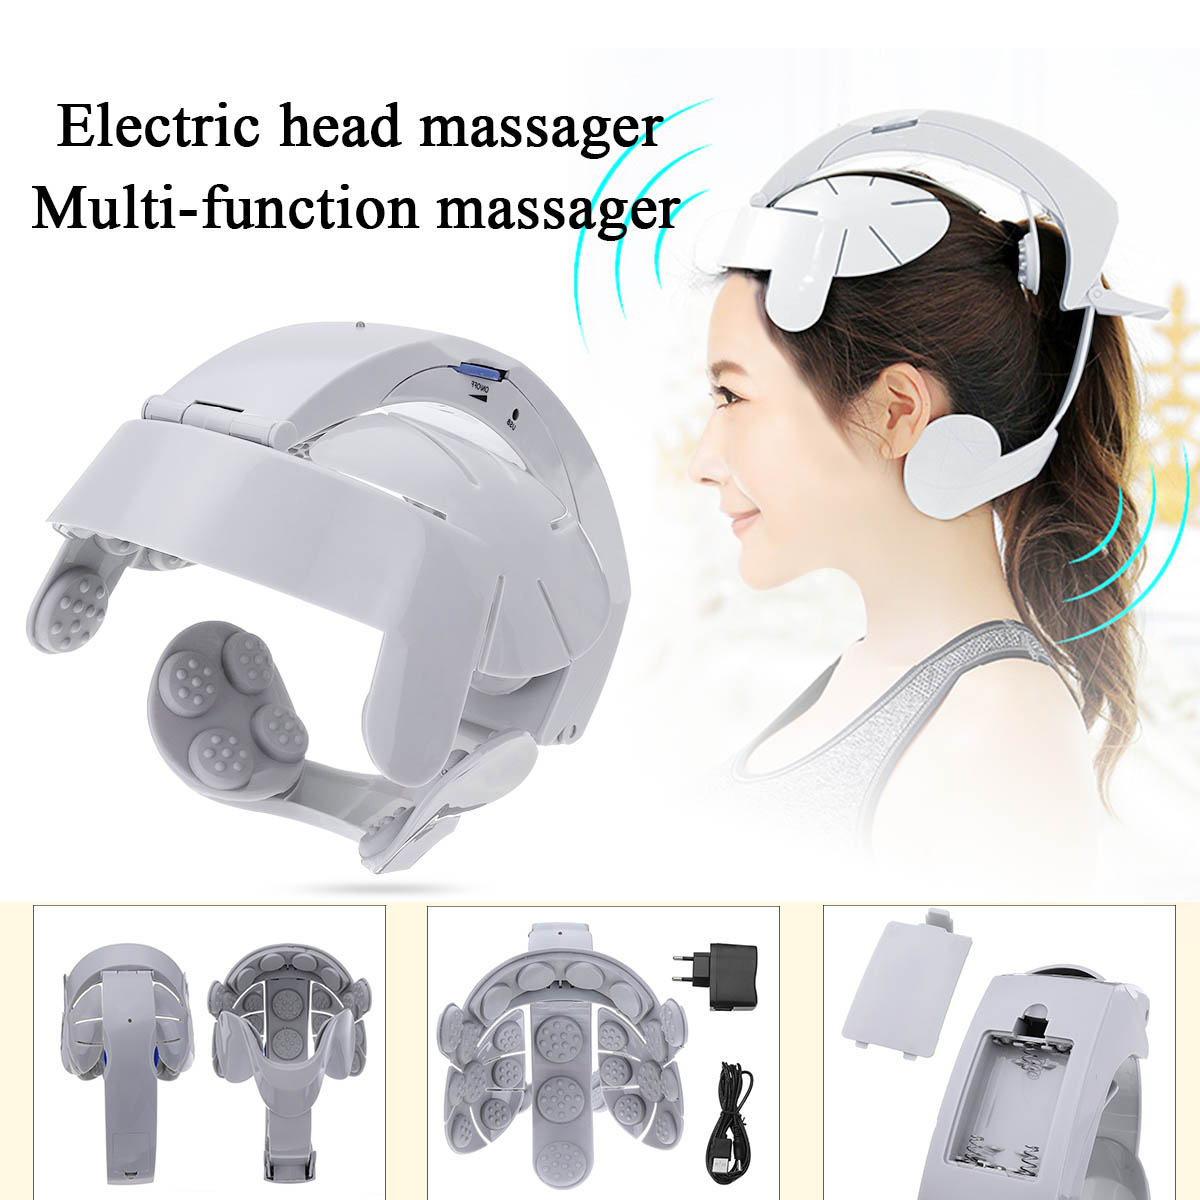 Head Vibration Massage Easy-brain Massager Electric Head Massage Relax Brain Acupuncture Points Stress Release Machine UK/EU/US humanized design electric head massager brain massage relax easy acupuncture points fashion gray health care home